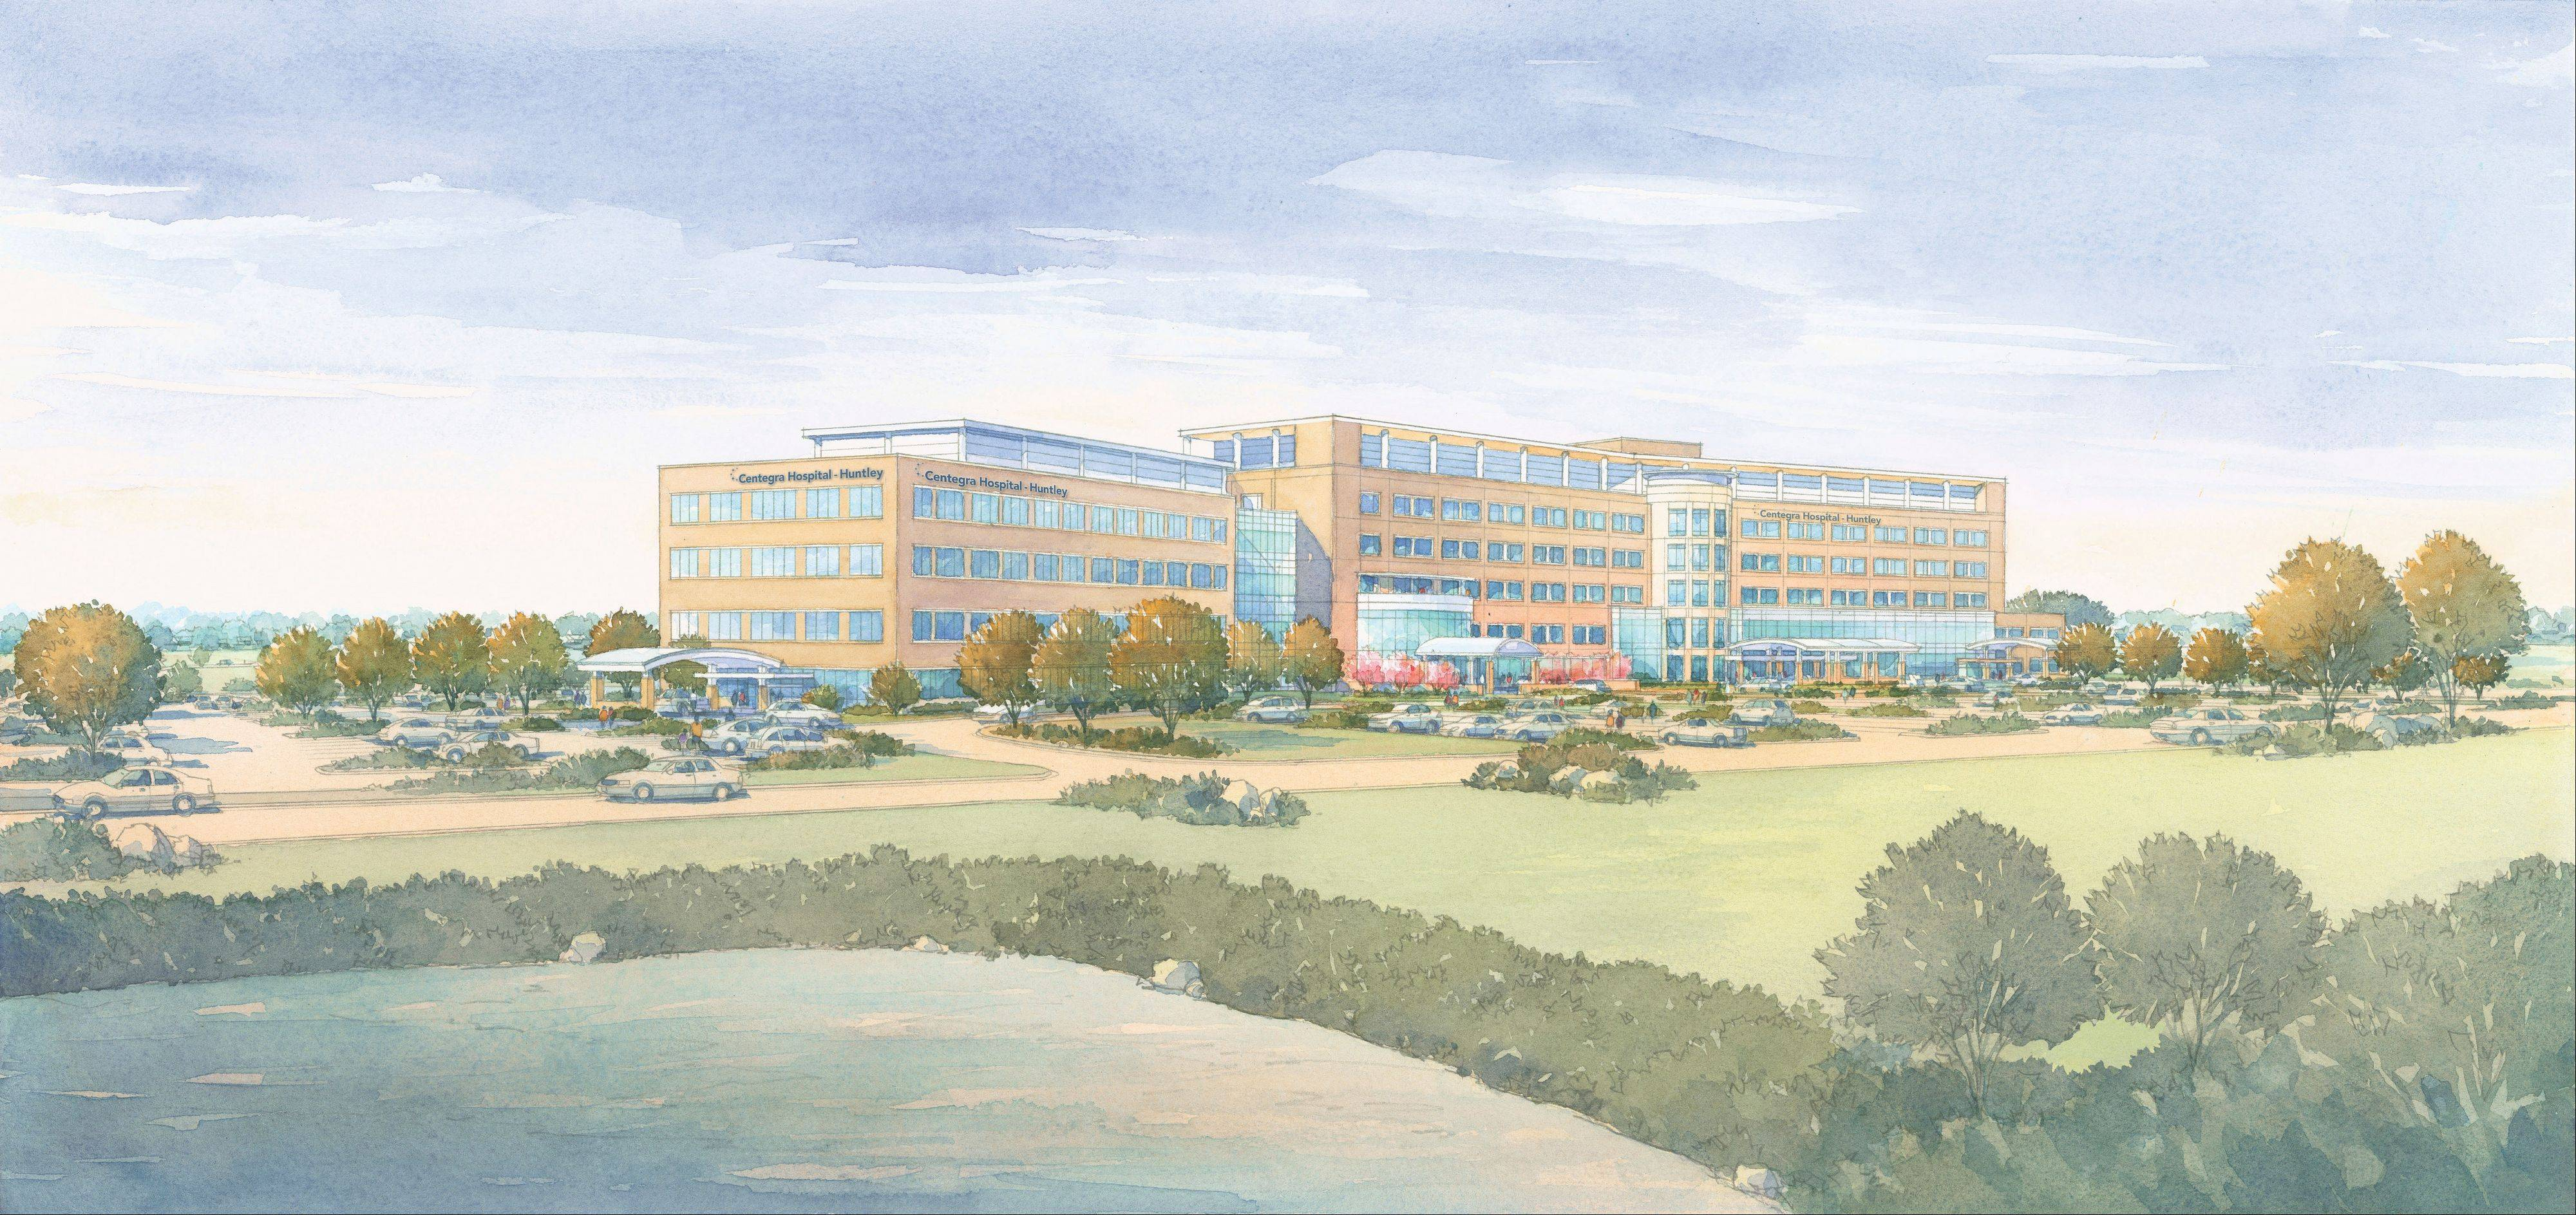 A rendering of the 128-bed hospital that Centegra Health System will begin building in Huntley.